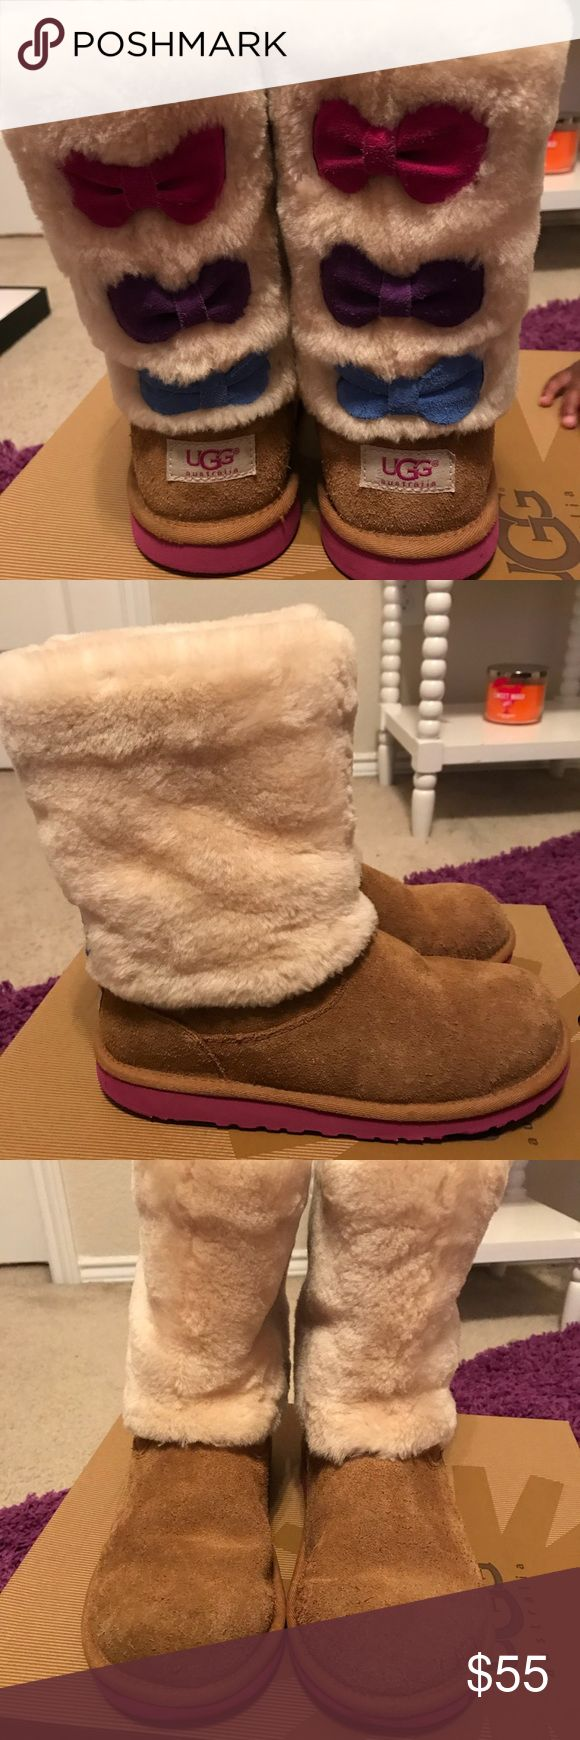 Girl Ugg Boots size 6 Authentic Girl Ugg Boots size 6  Creased toe on right and left foot boot shown in pictures 2 and 3. Comes with original box UGG Shoes Boots